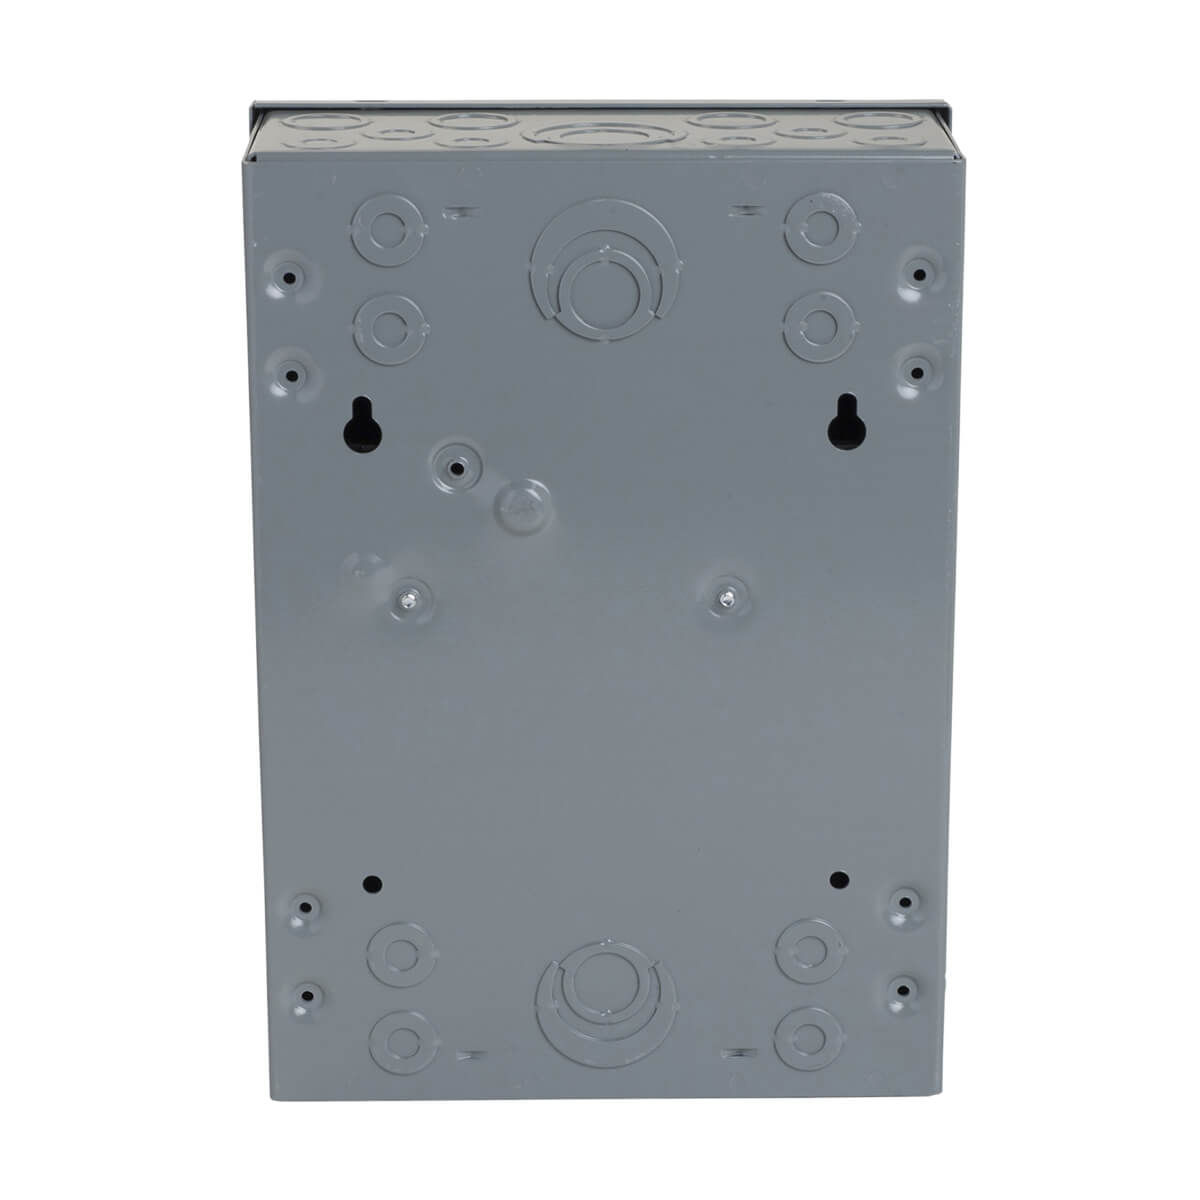 Schneider Electric Homeline Sub Panels  - 100A - with 6 Spaces - 12 Circuits Max